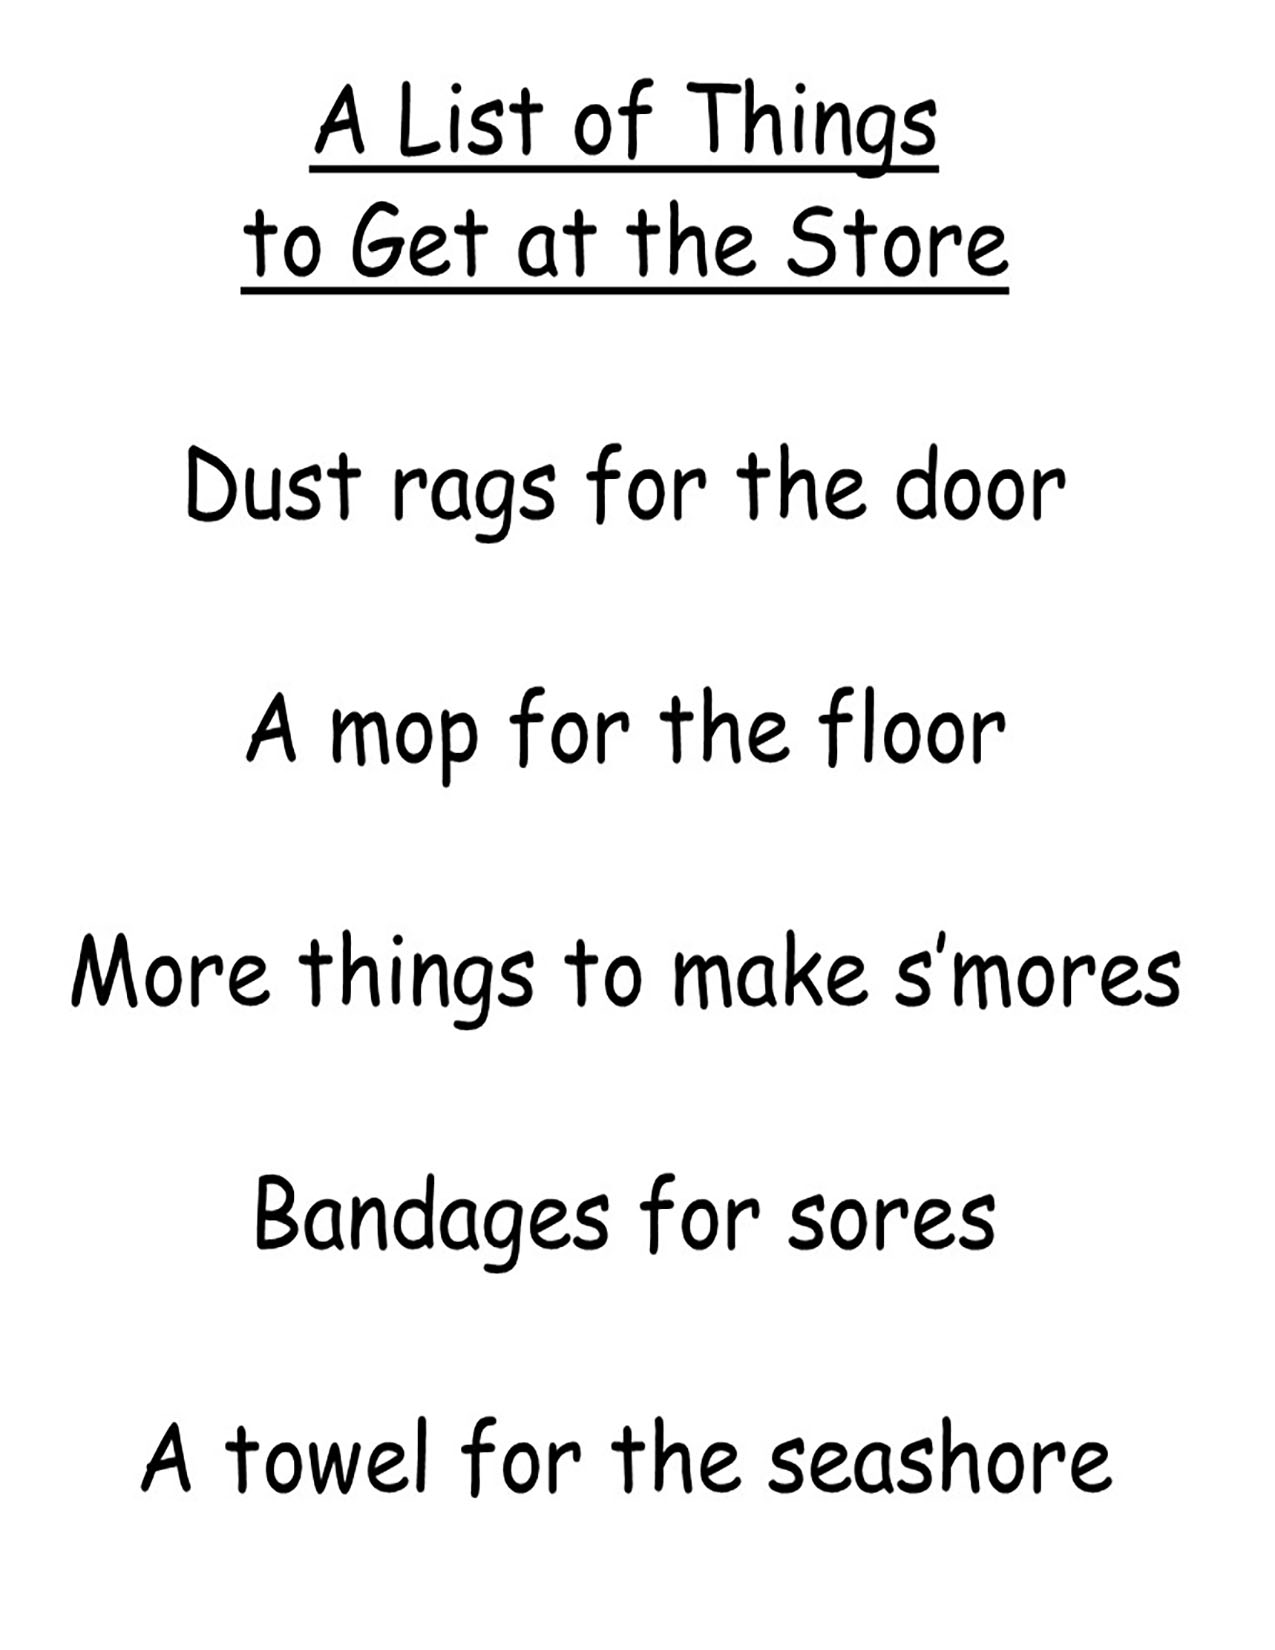 list of things to get at the store